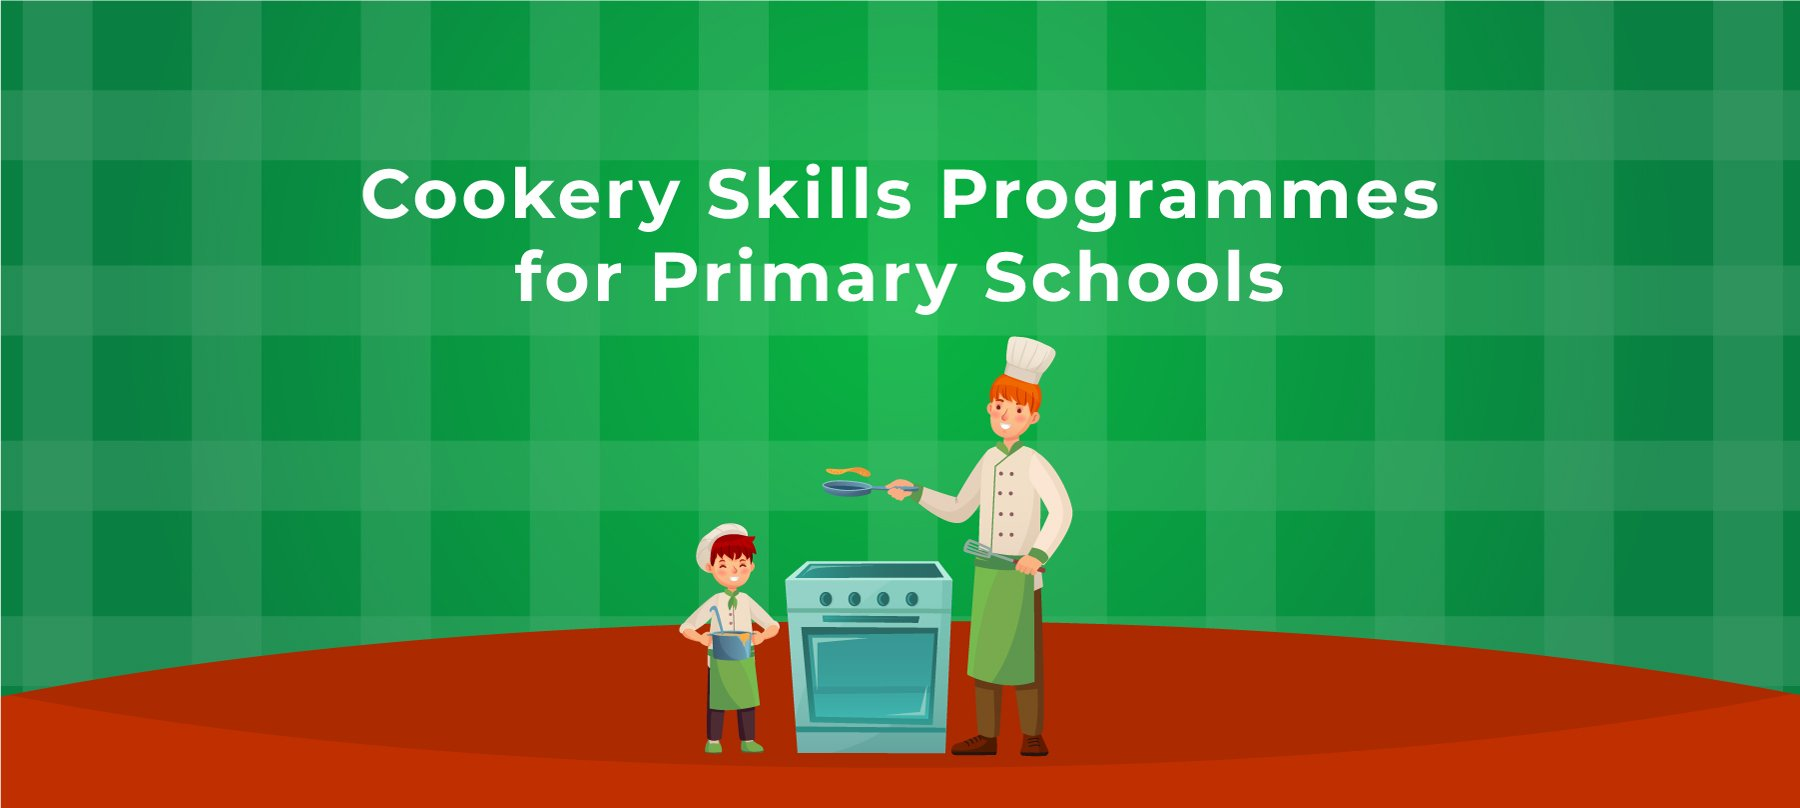 Cookery Skills Programmes for Primary Schools